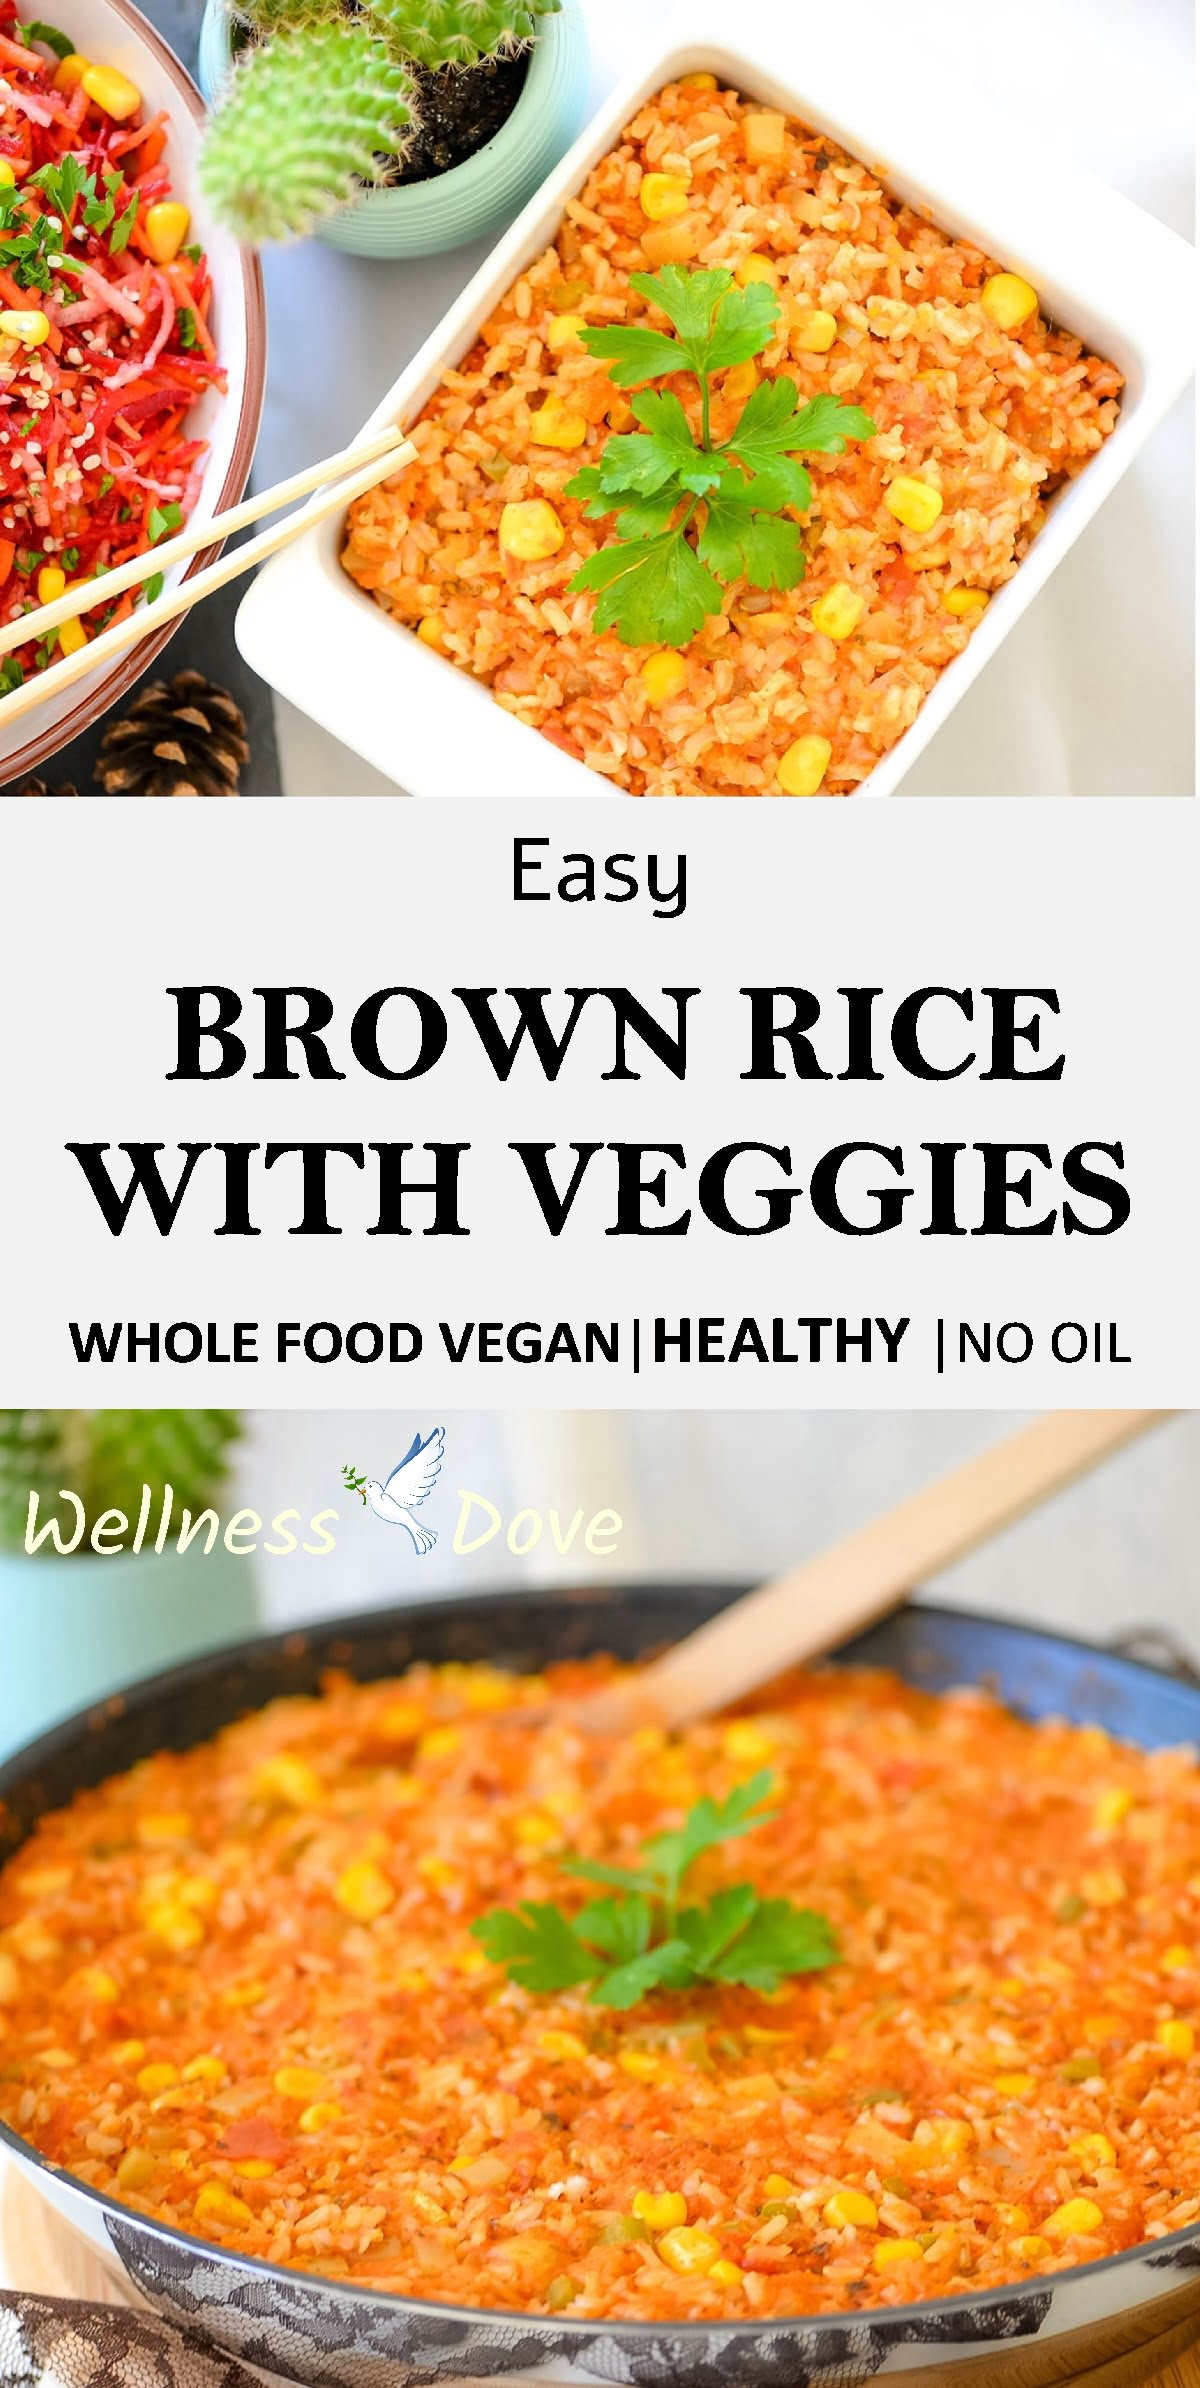 Super tasty and easy Brown Rice With Veggies recipe! This is a plant-based recipe, prepared without any oil! Combined with so many veggies, this brown rice feels fresh and really rich inflavor.